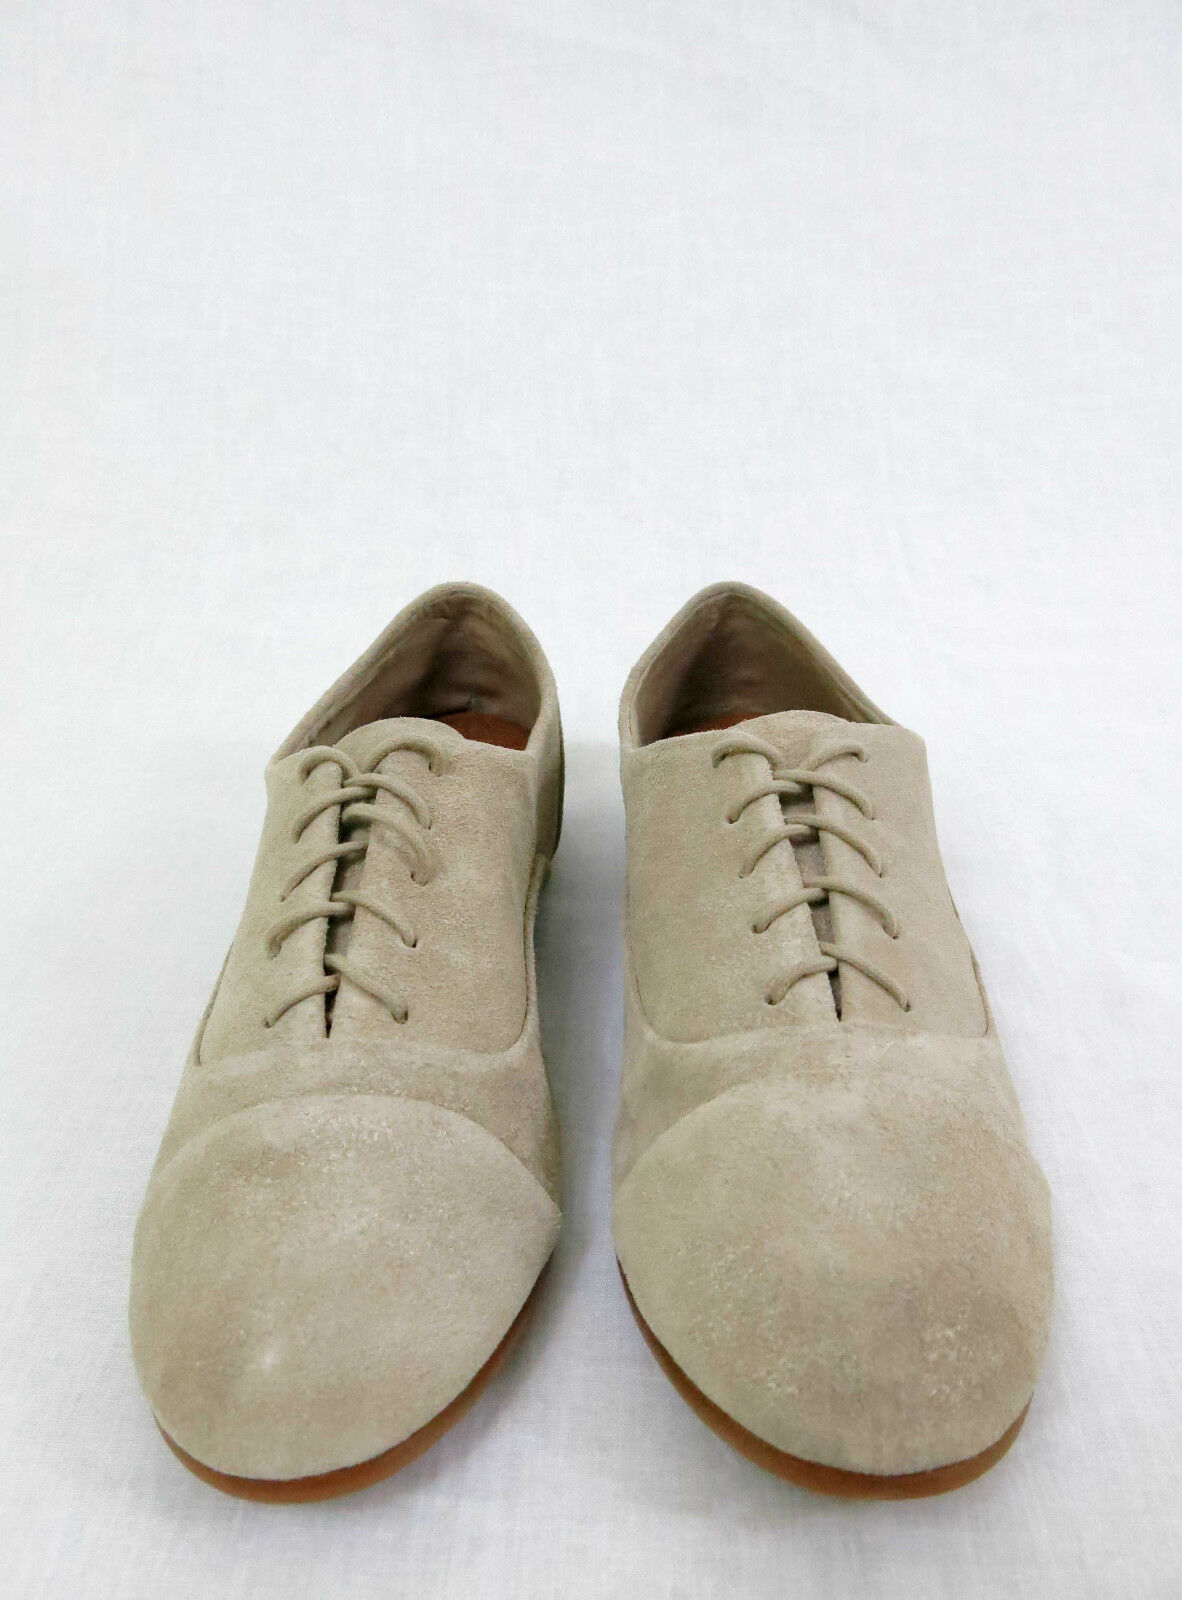 LUCKY BRAND Davie Oxfords Flats Lace-Up Suede Beige Taupe Shimmer Größe 8